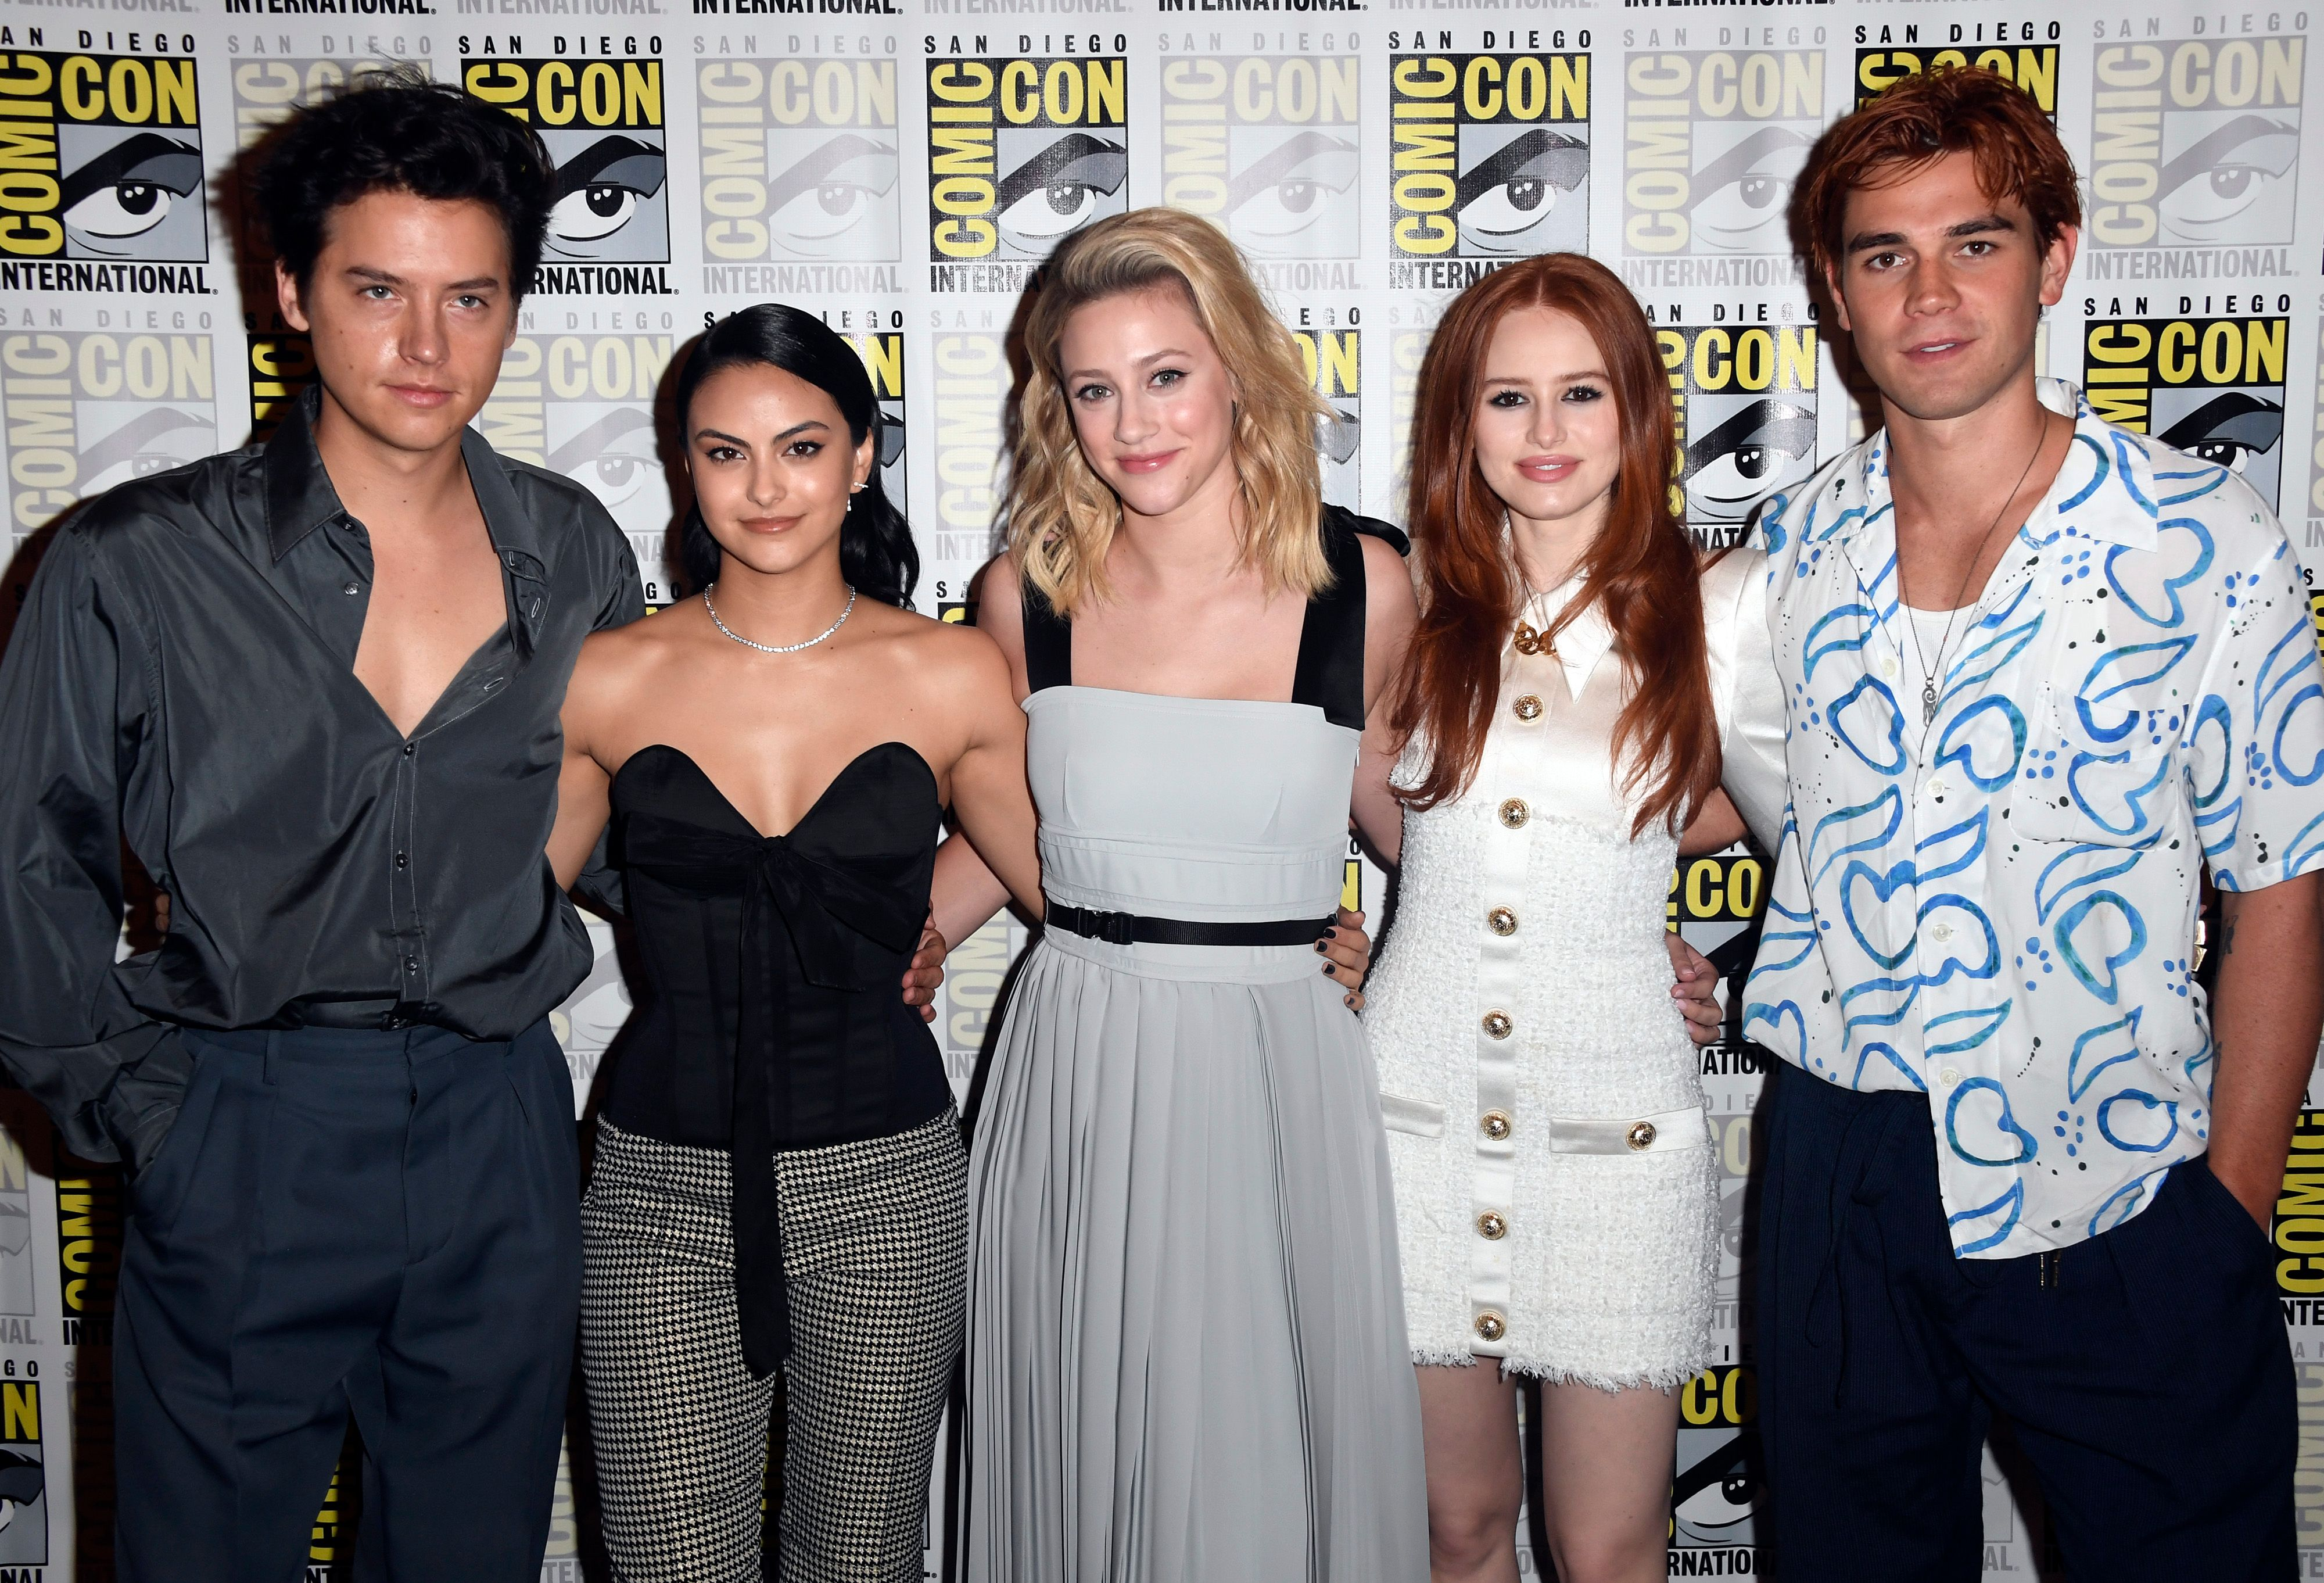 Cole Sprouse, Camila Mendes, Lili Reinhart, Madelaine Petsch, and K.J. Apa at the 2019 Comic-Con in San Diego California | Source: Getty Images